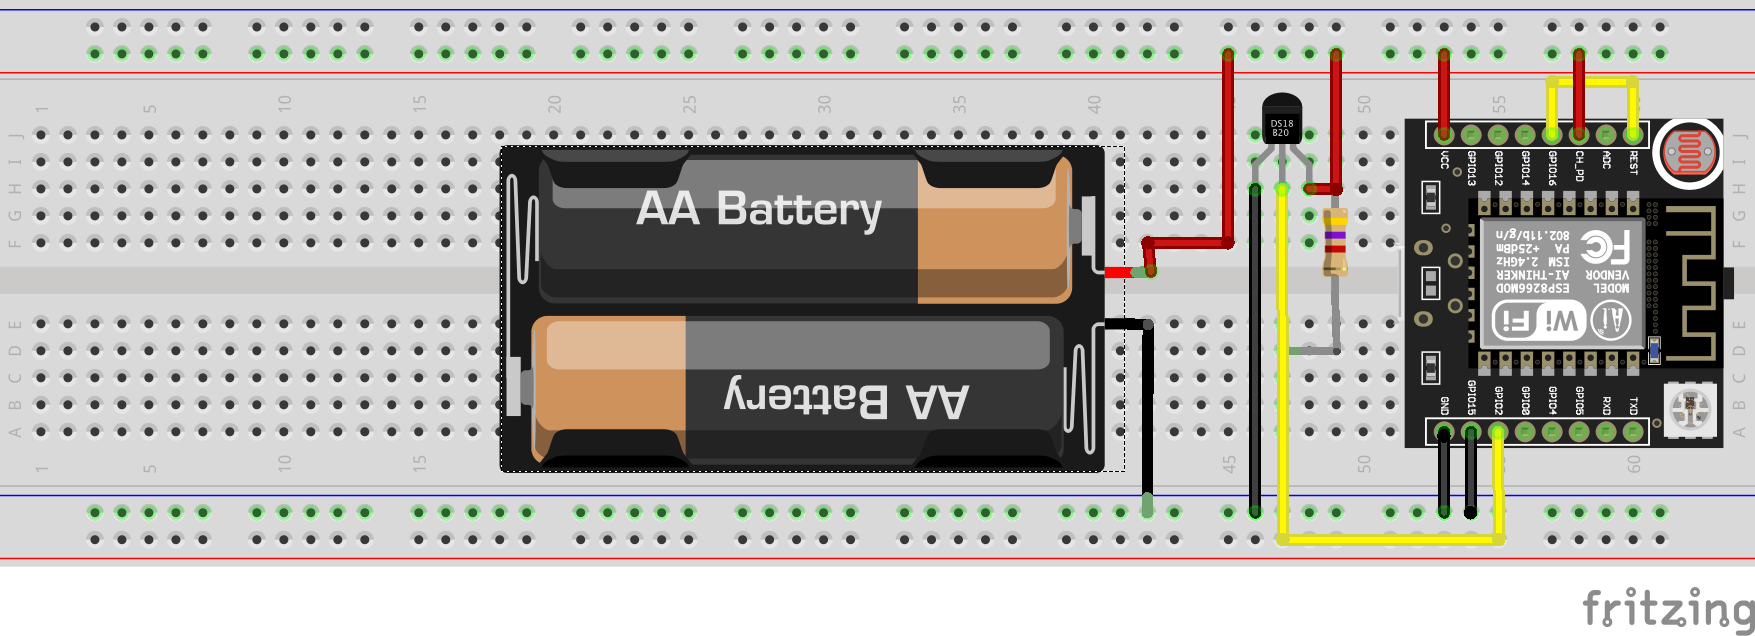 Battery-operated temperature monitor logging data directly